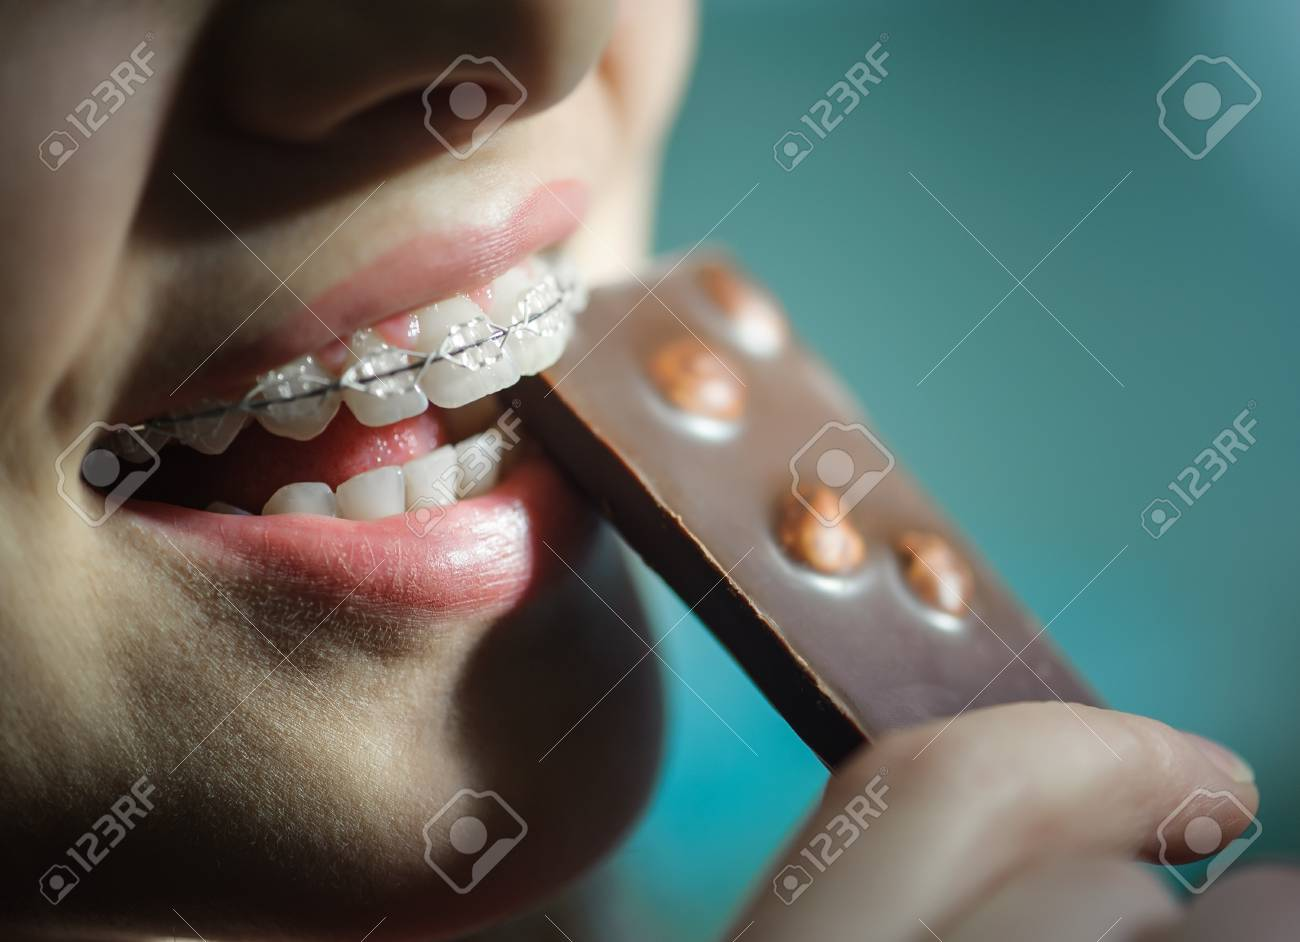 young girl eating chocolate, with ceramic teeth braces - 69777149